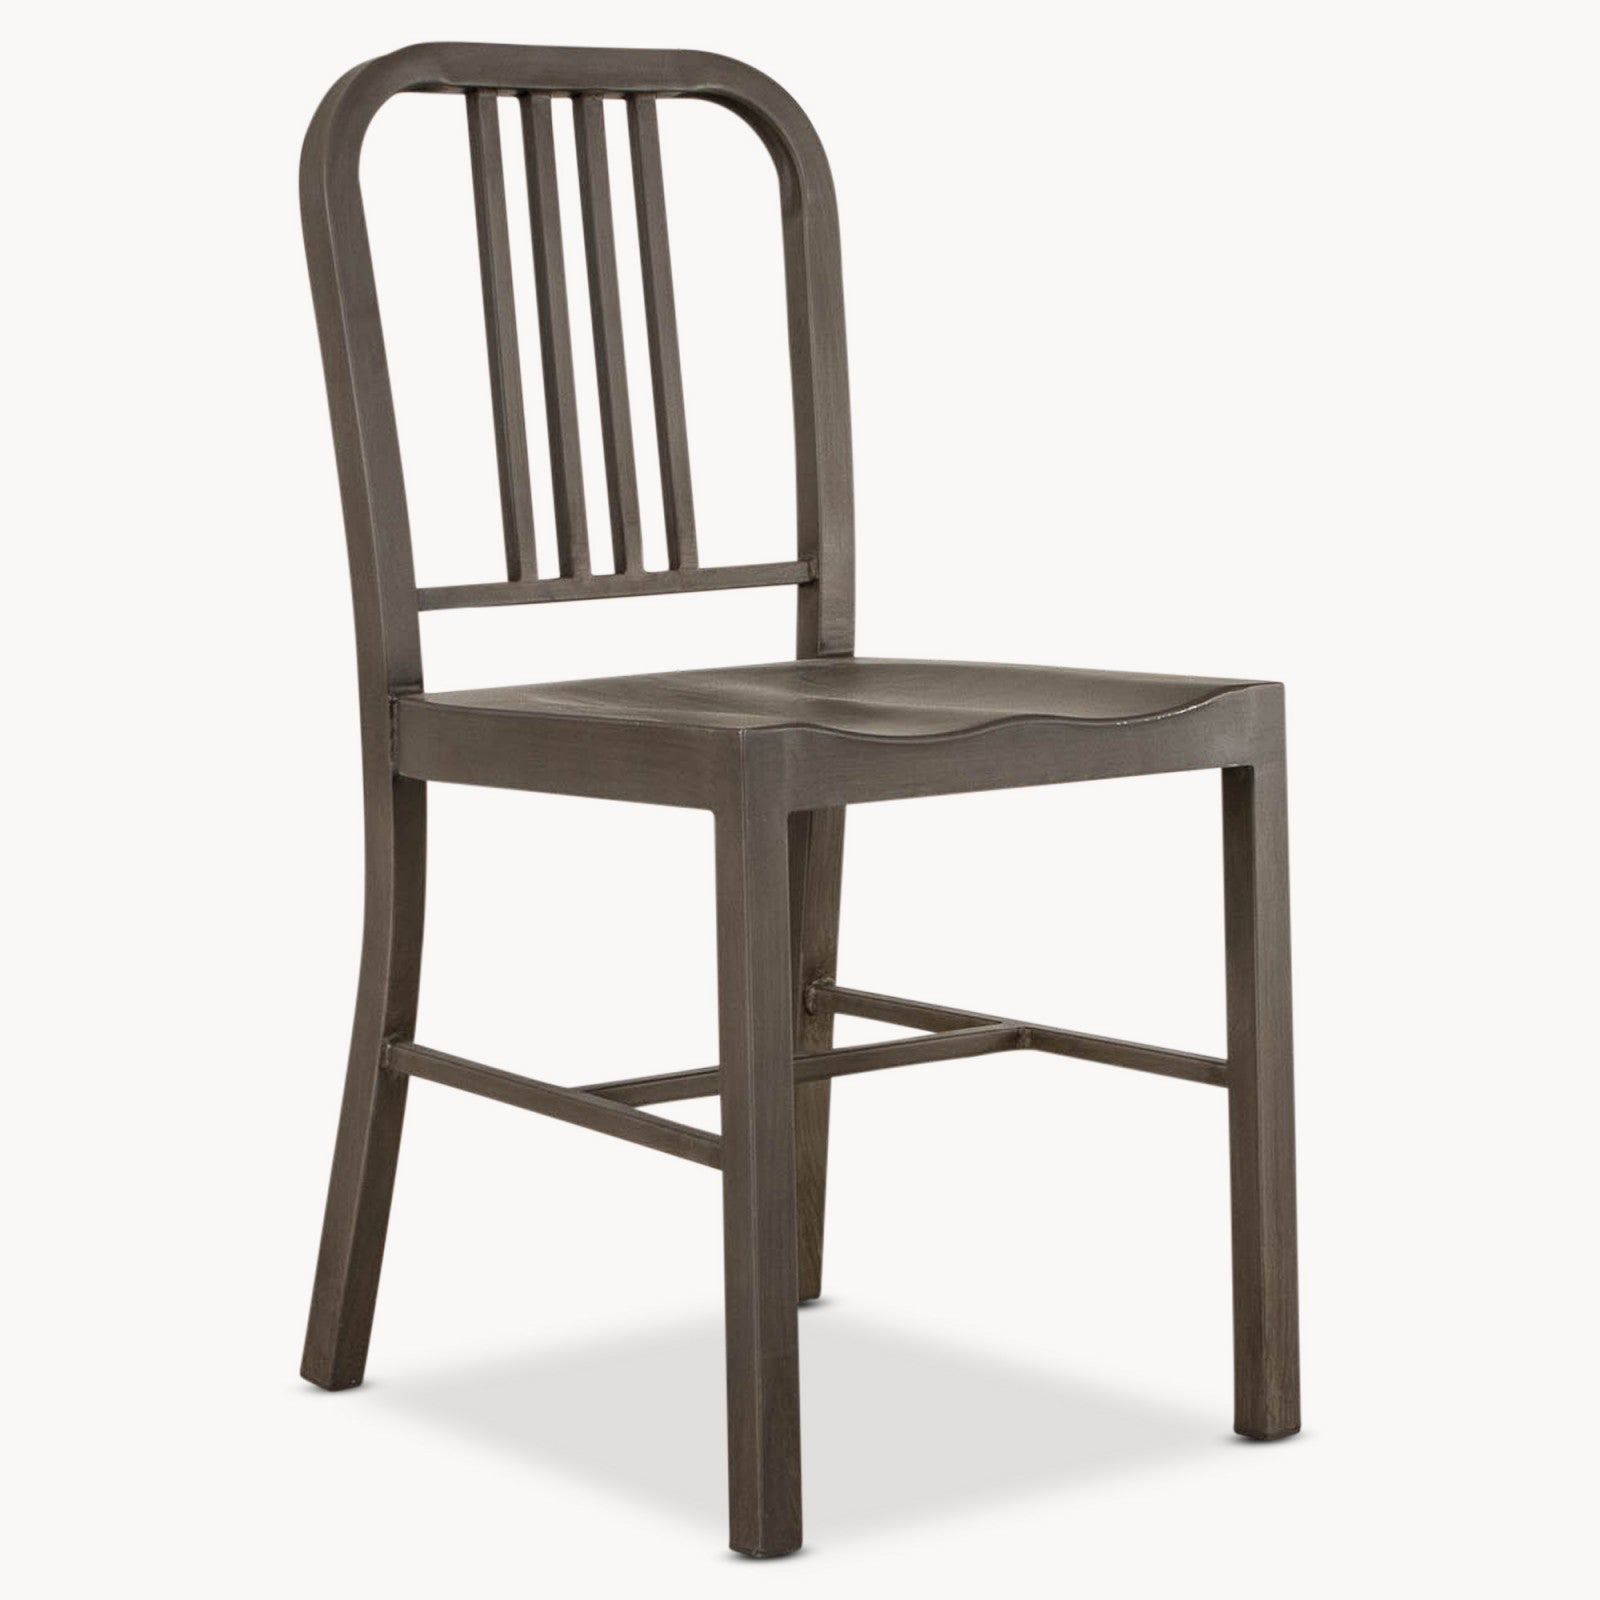 Woodcroft Metal Chair